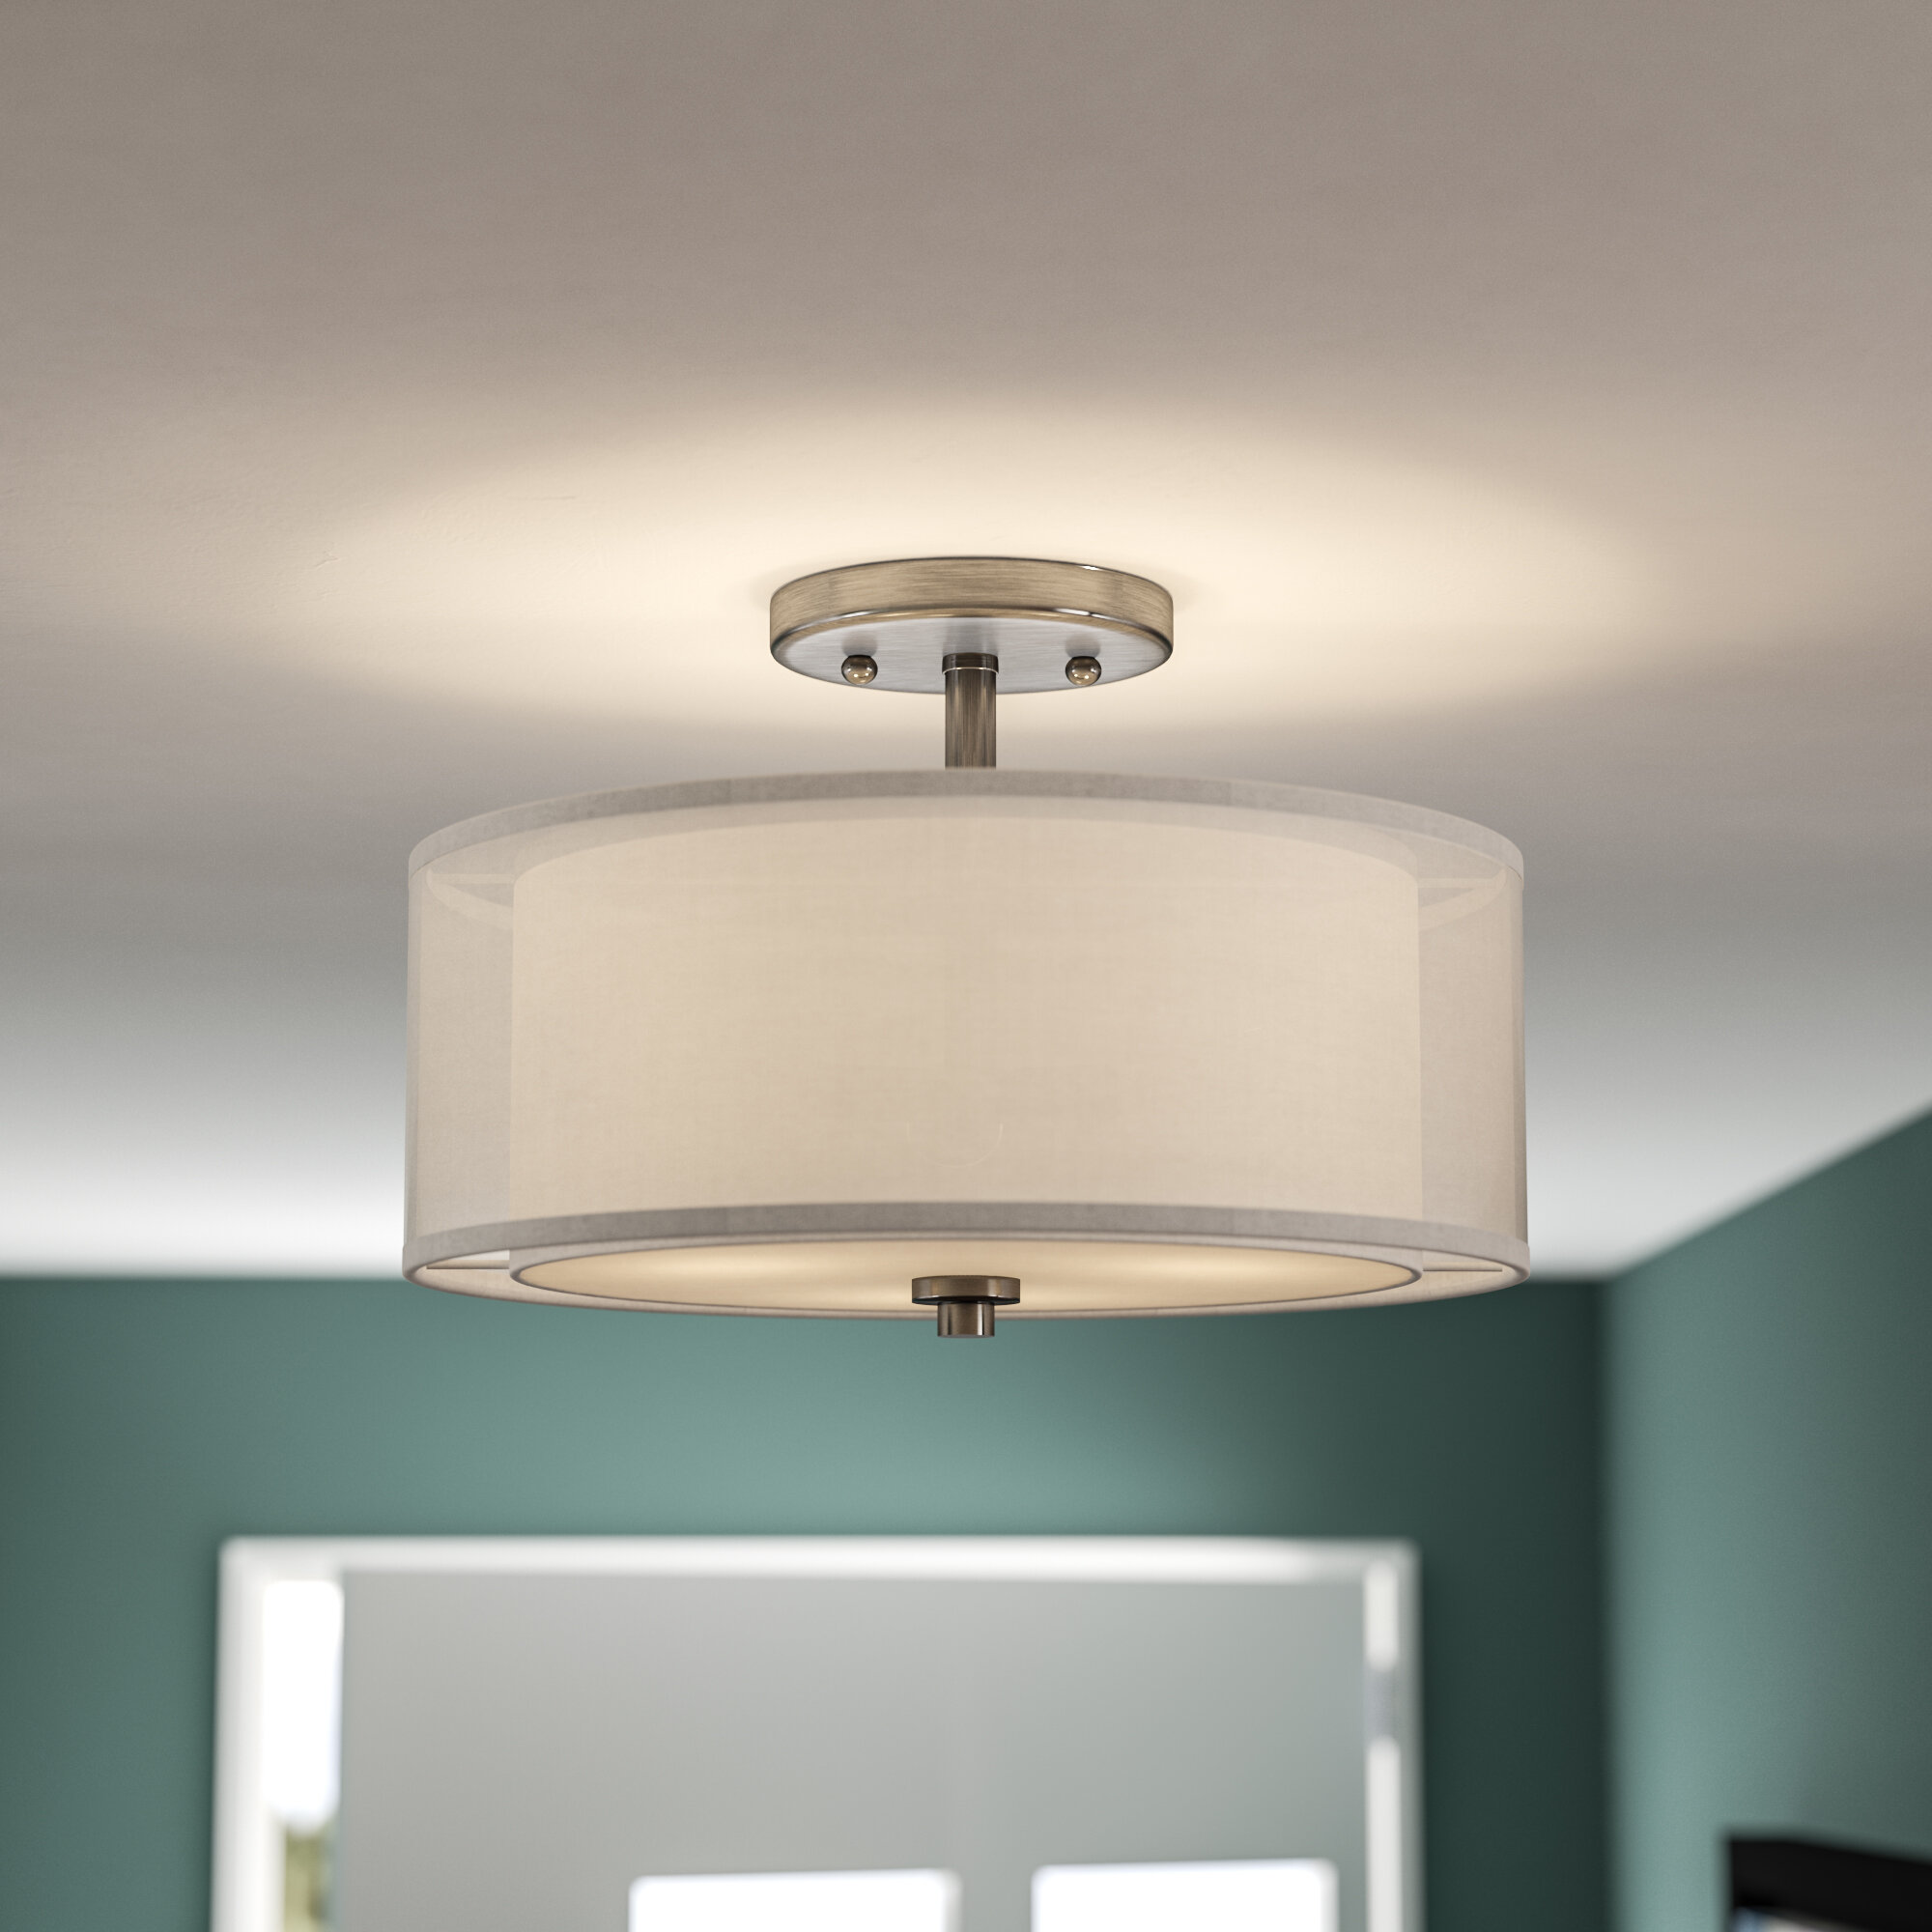 Ebern Designs Demby 3 Light Semi Flush Mount Reviews Wayfair